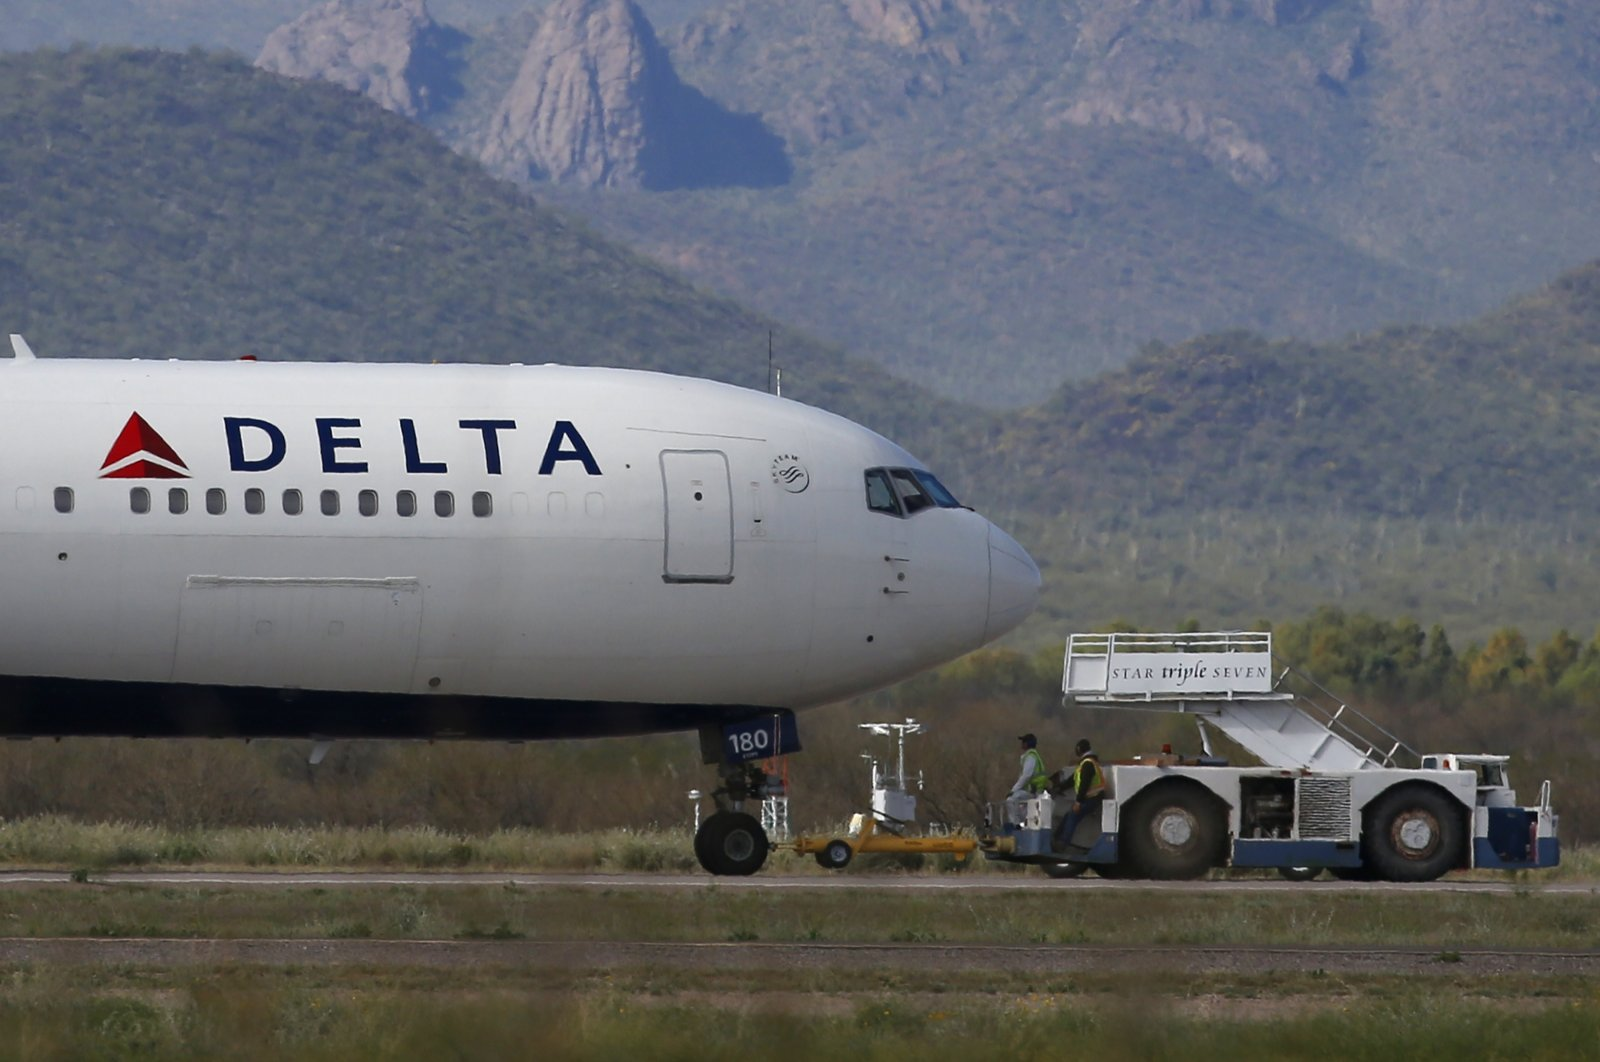 A recently landed Delta Air Lines airplane is worked on by ground crew at Pinal Airpark Wednesday, March 18, 2020. (AP Photo)